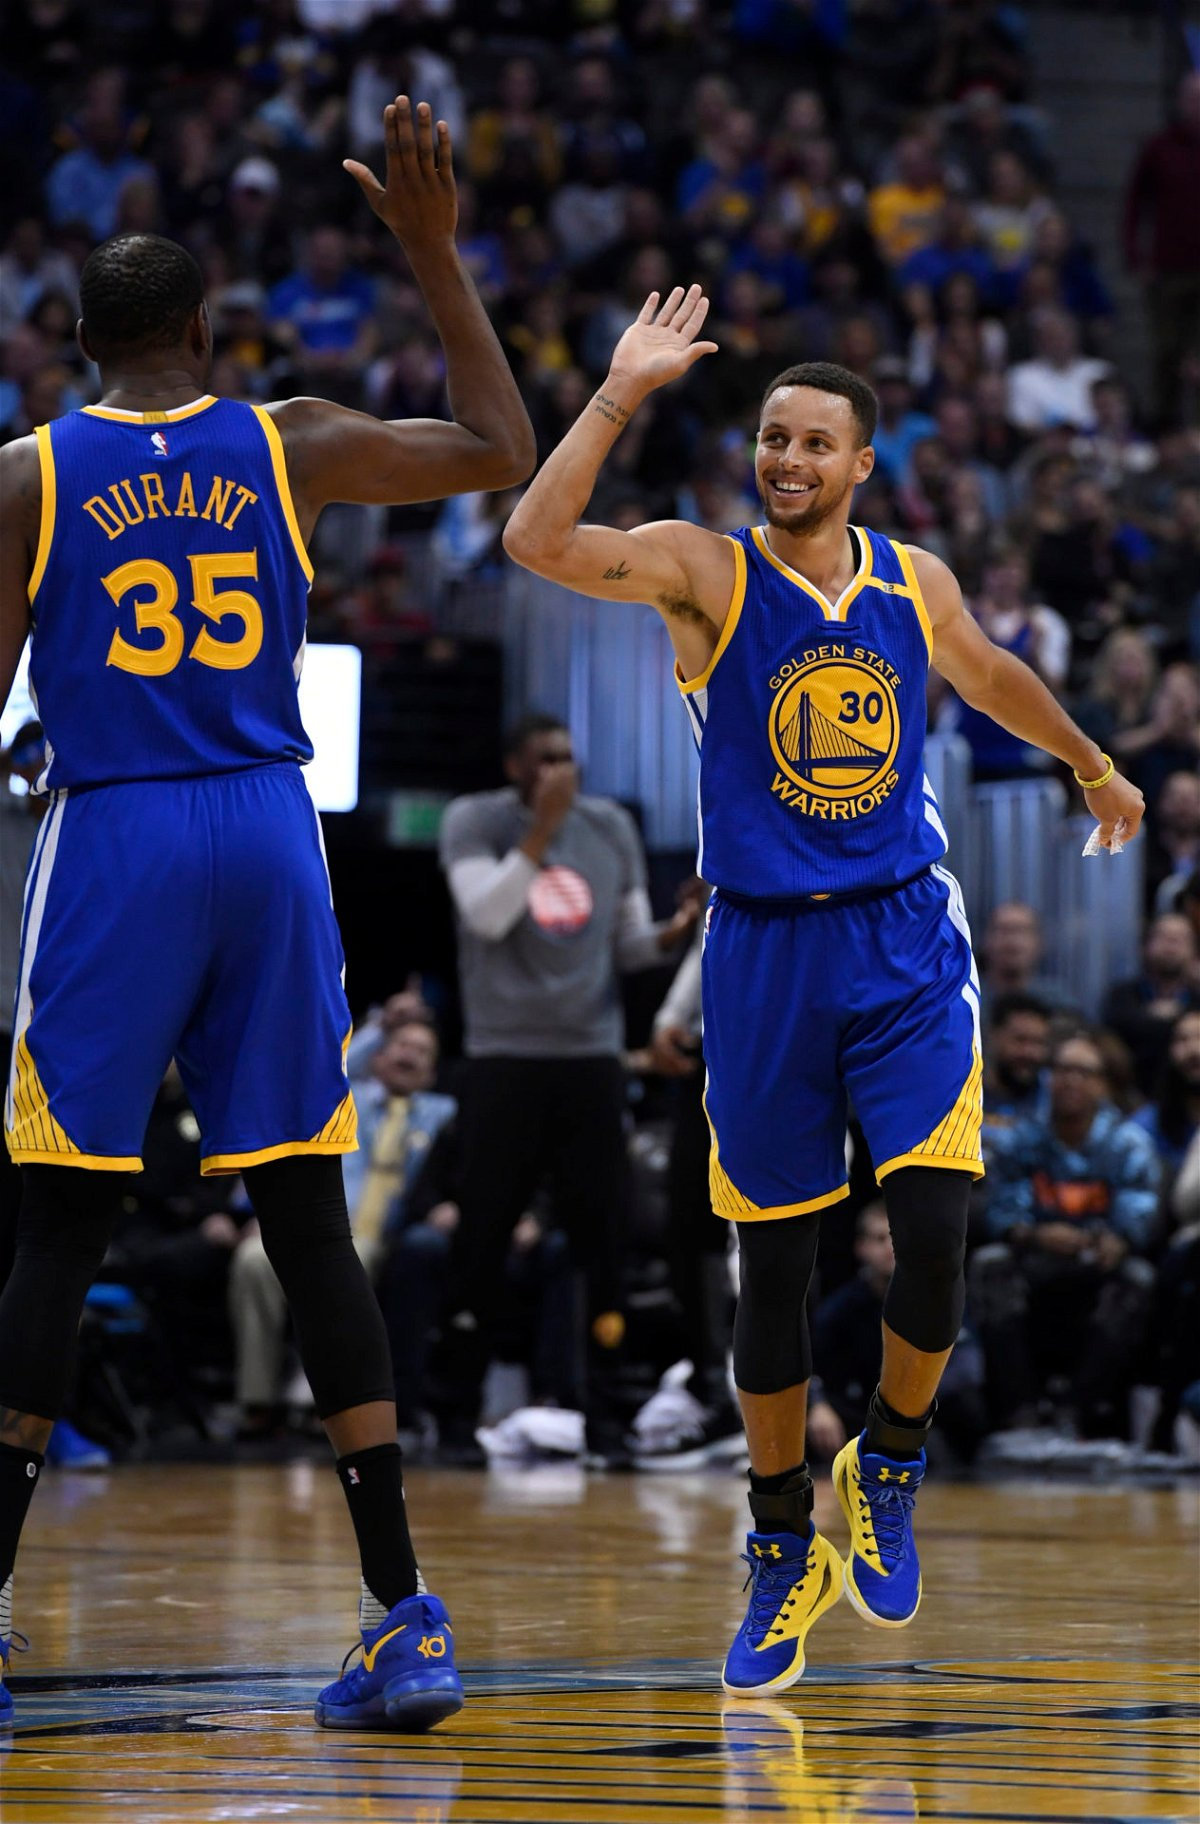 Winning Against Lebron James Isiah Thomas Has Special Words Of Appreciation For Steph Curry Essentiallysports